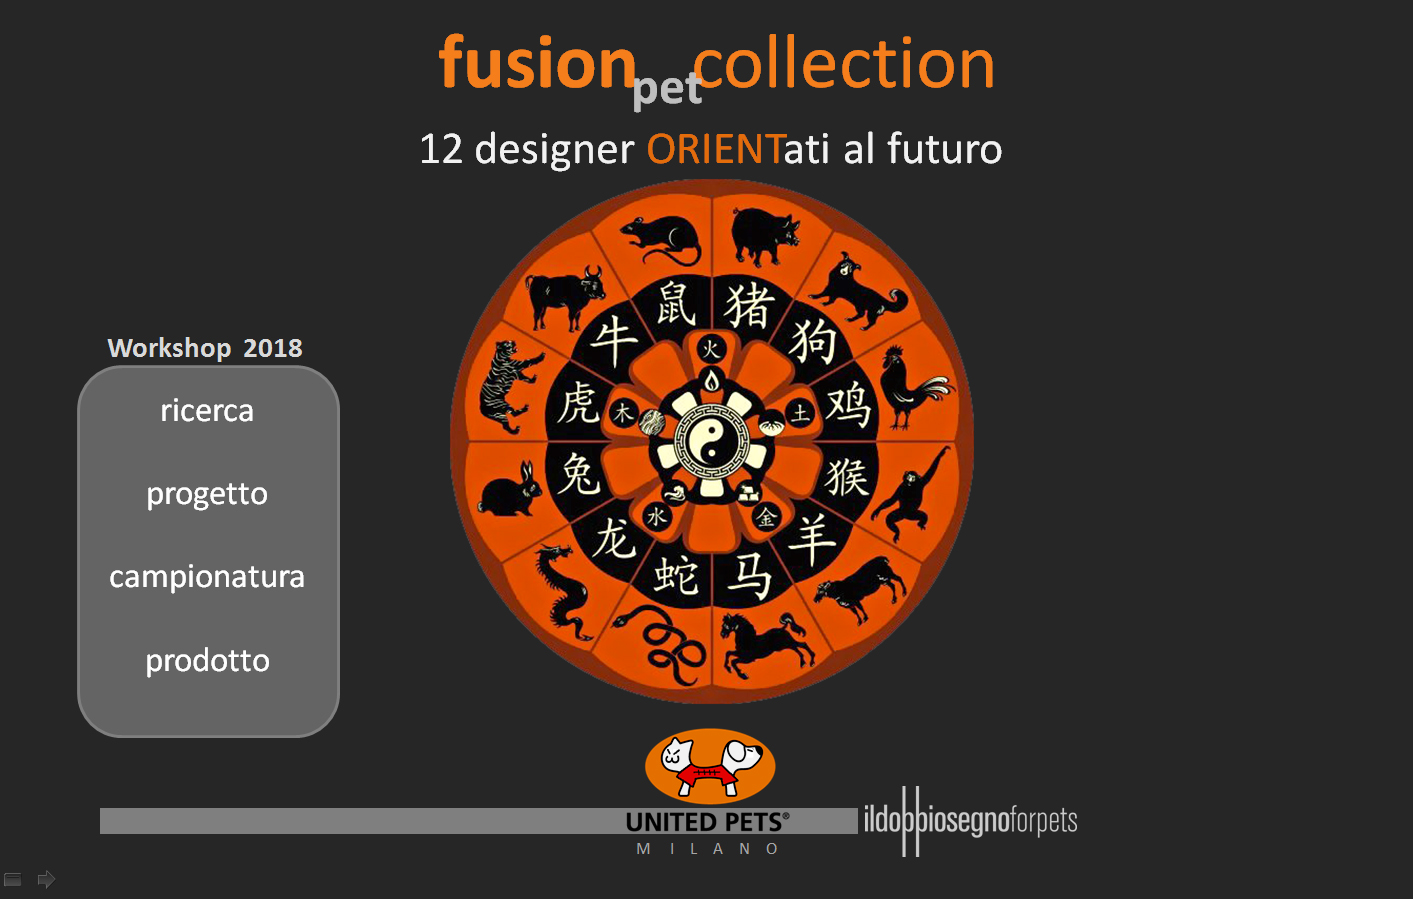 fusion-pet-collection